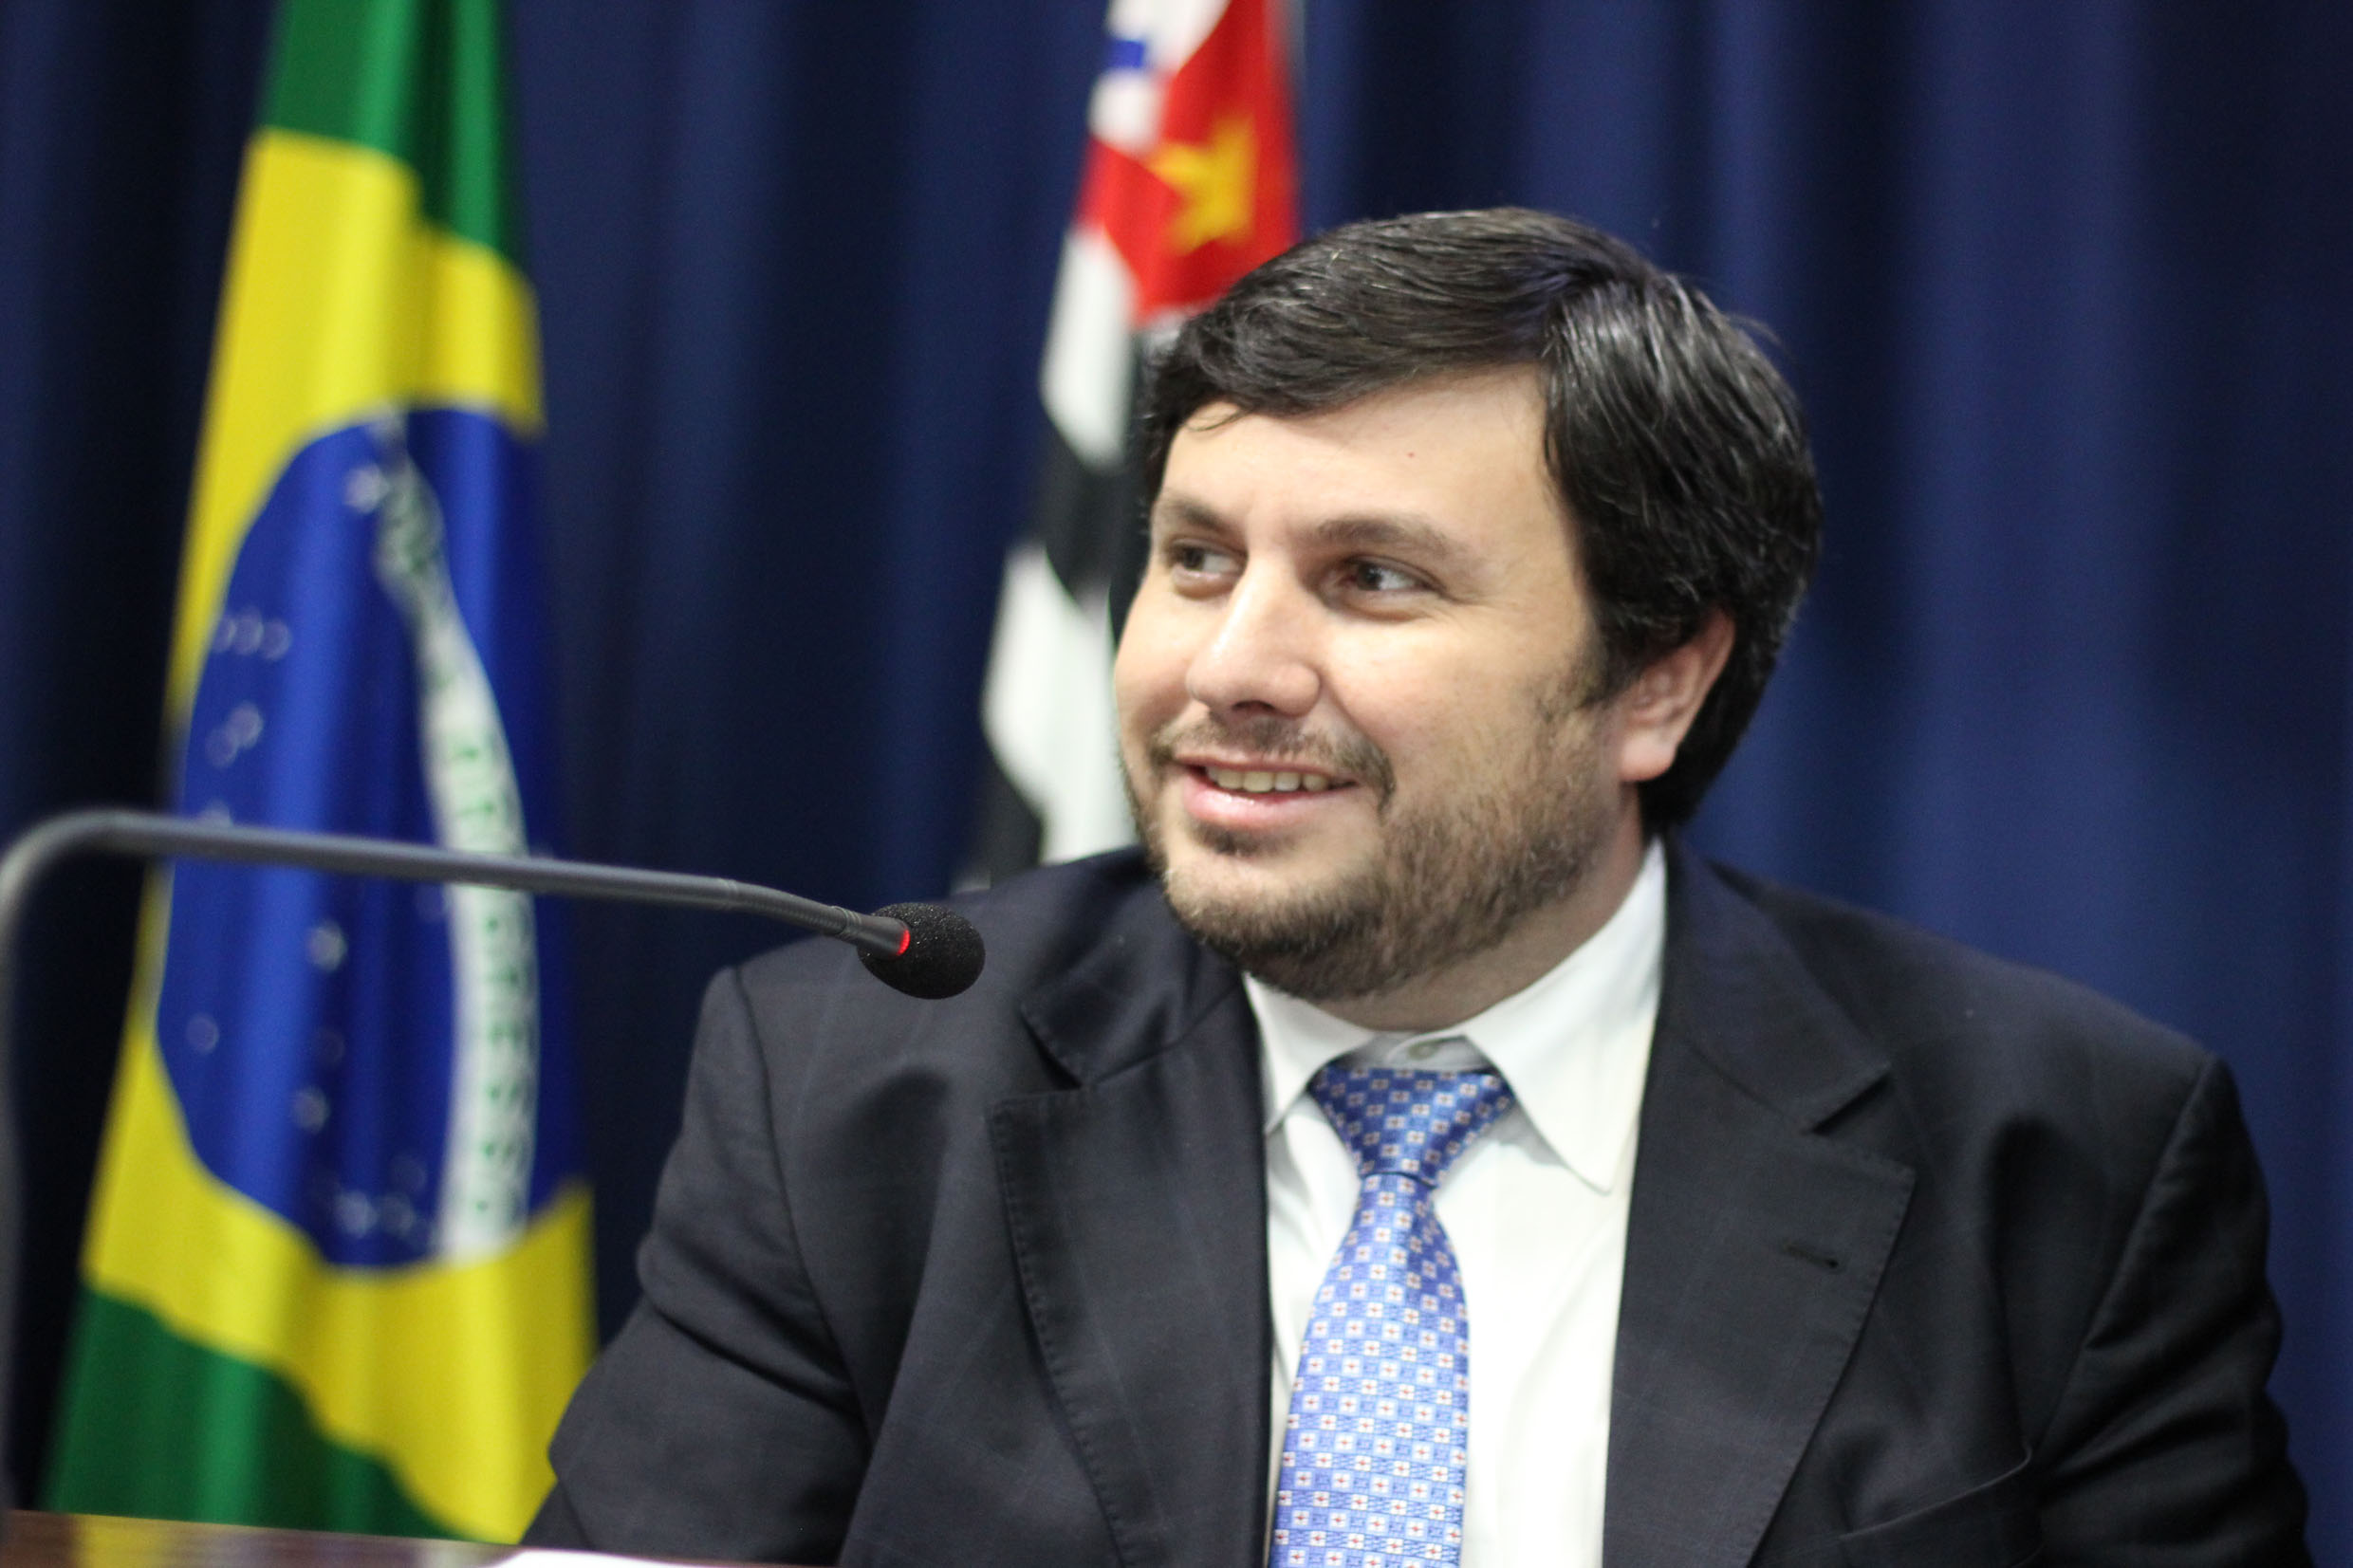 André Soares<a style='float:right' href='https://www3.al.sp.gov.br/repositorio/noticia/N-06-2016/fg192020.jpg' target=_blank><img src='/_img/material-file-download-white.png' width='14px' alt='Clique para baixar a imagem'></a>